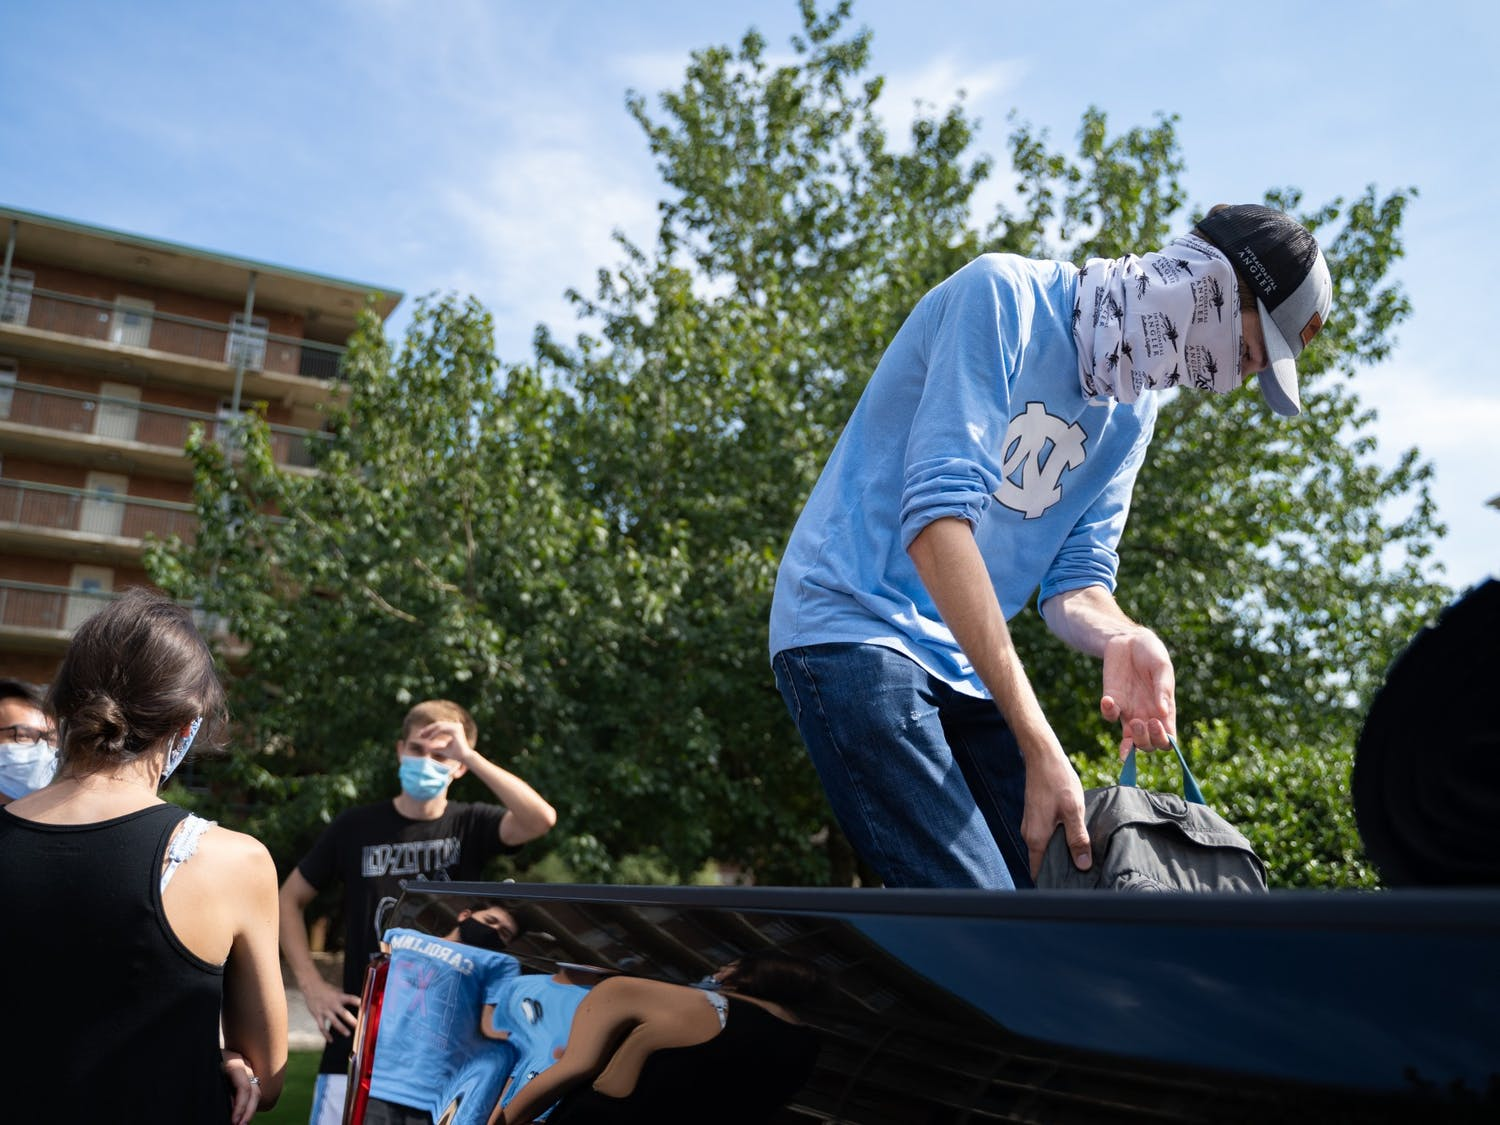 A first-year previously living in Craige Residence Hall moves out with the help of his suitemates on Tuesday, Aug. 18, 2020 following UNC's announcement that all classes will be moving to an online format.